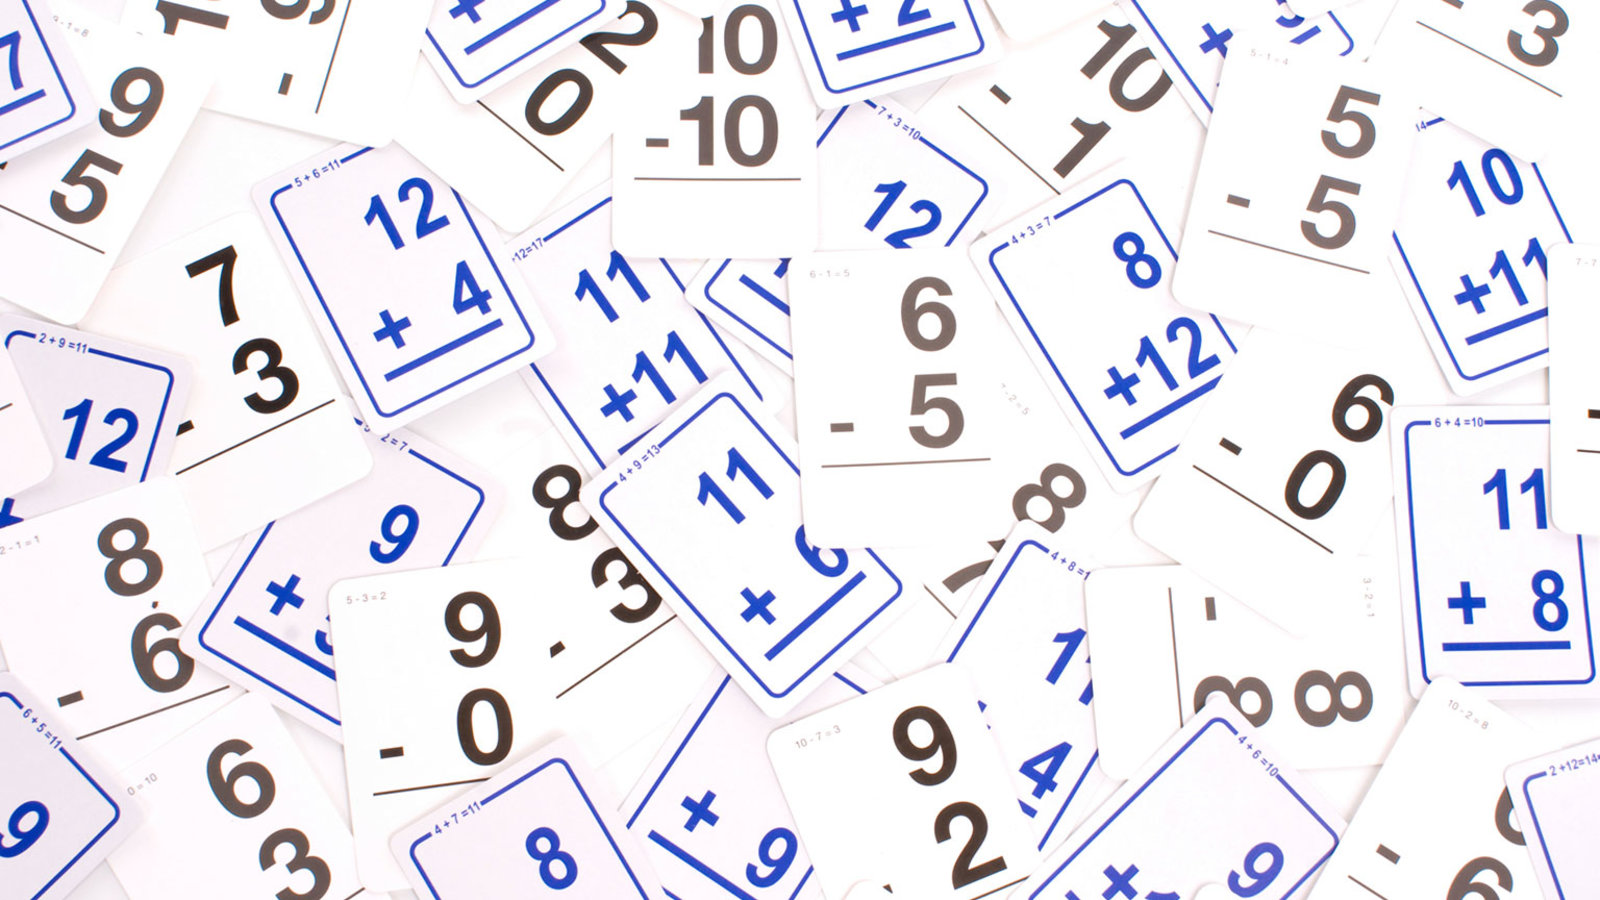 Mental Addition and Subtraction